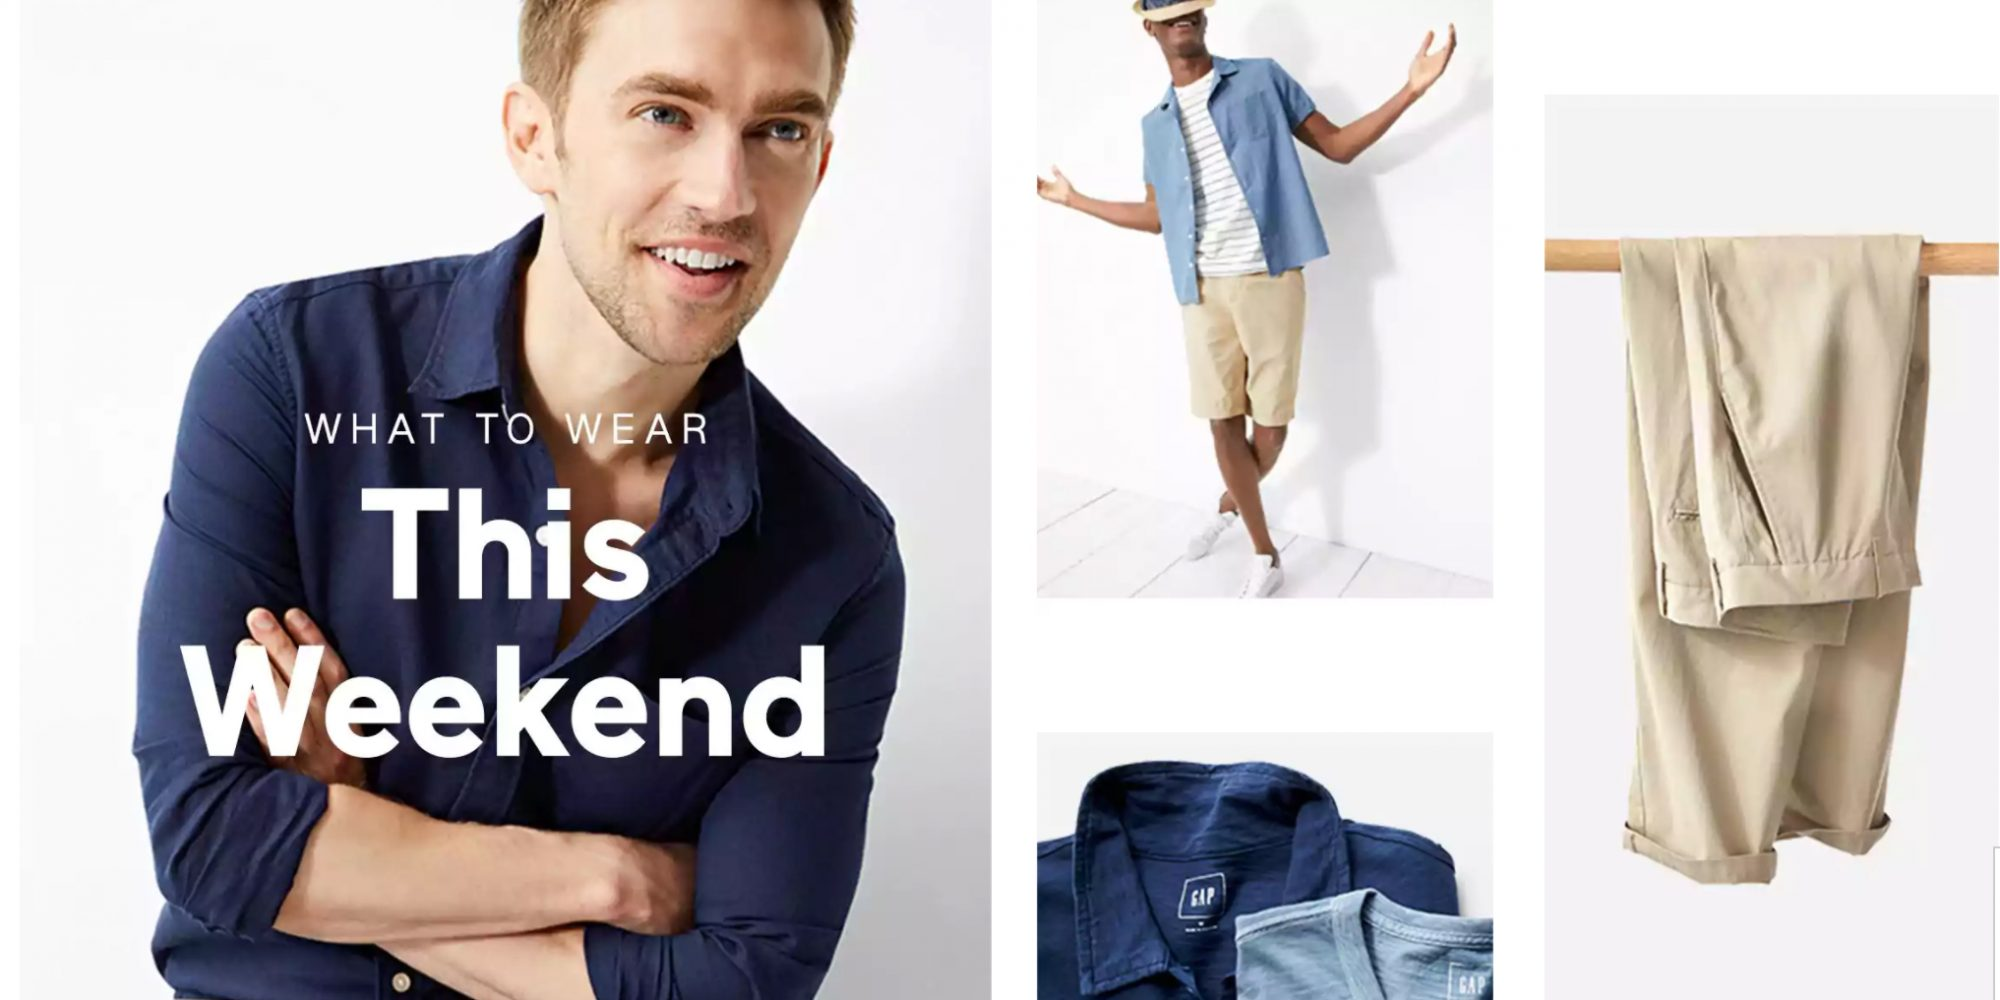 GAP's deals are back with up to 70% off sitewide + an extra 20% off your purchase